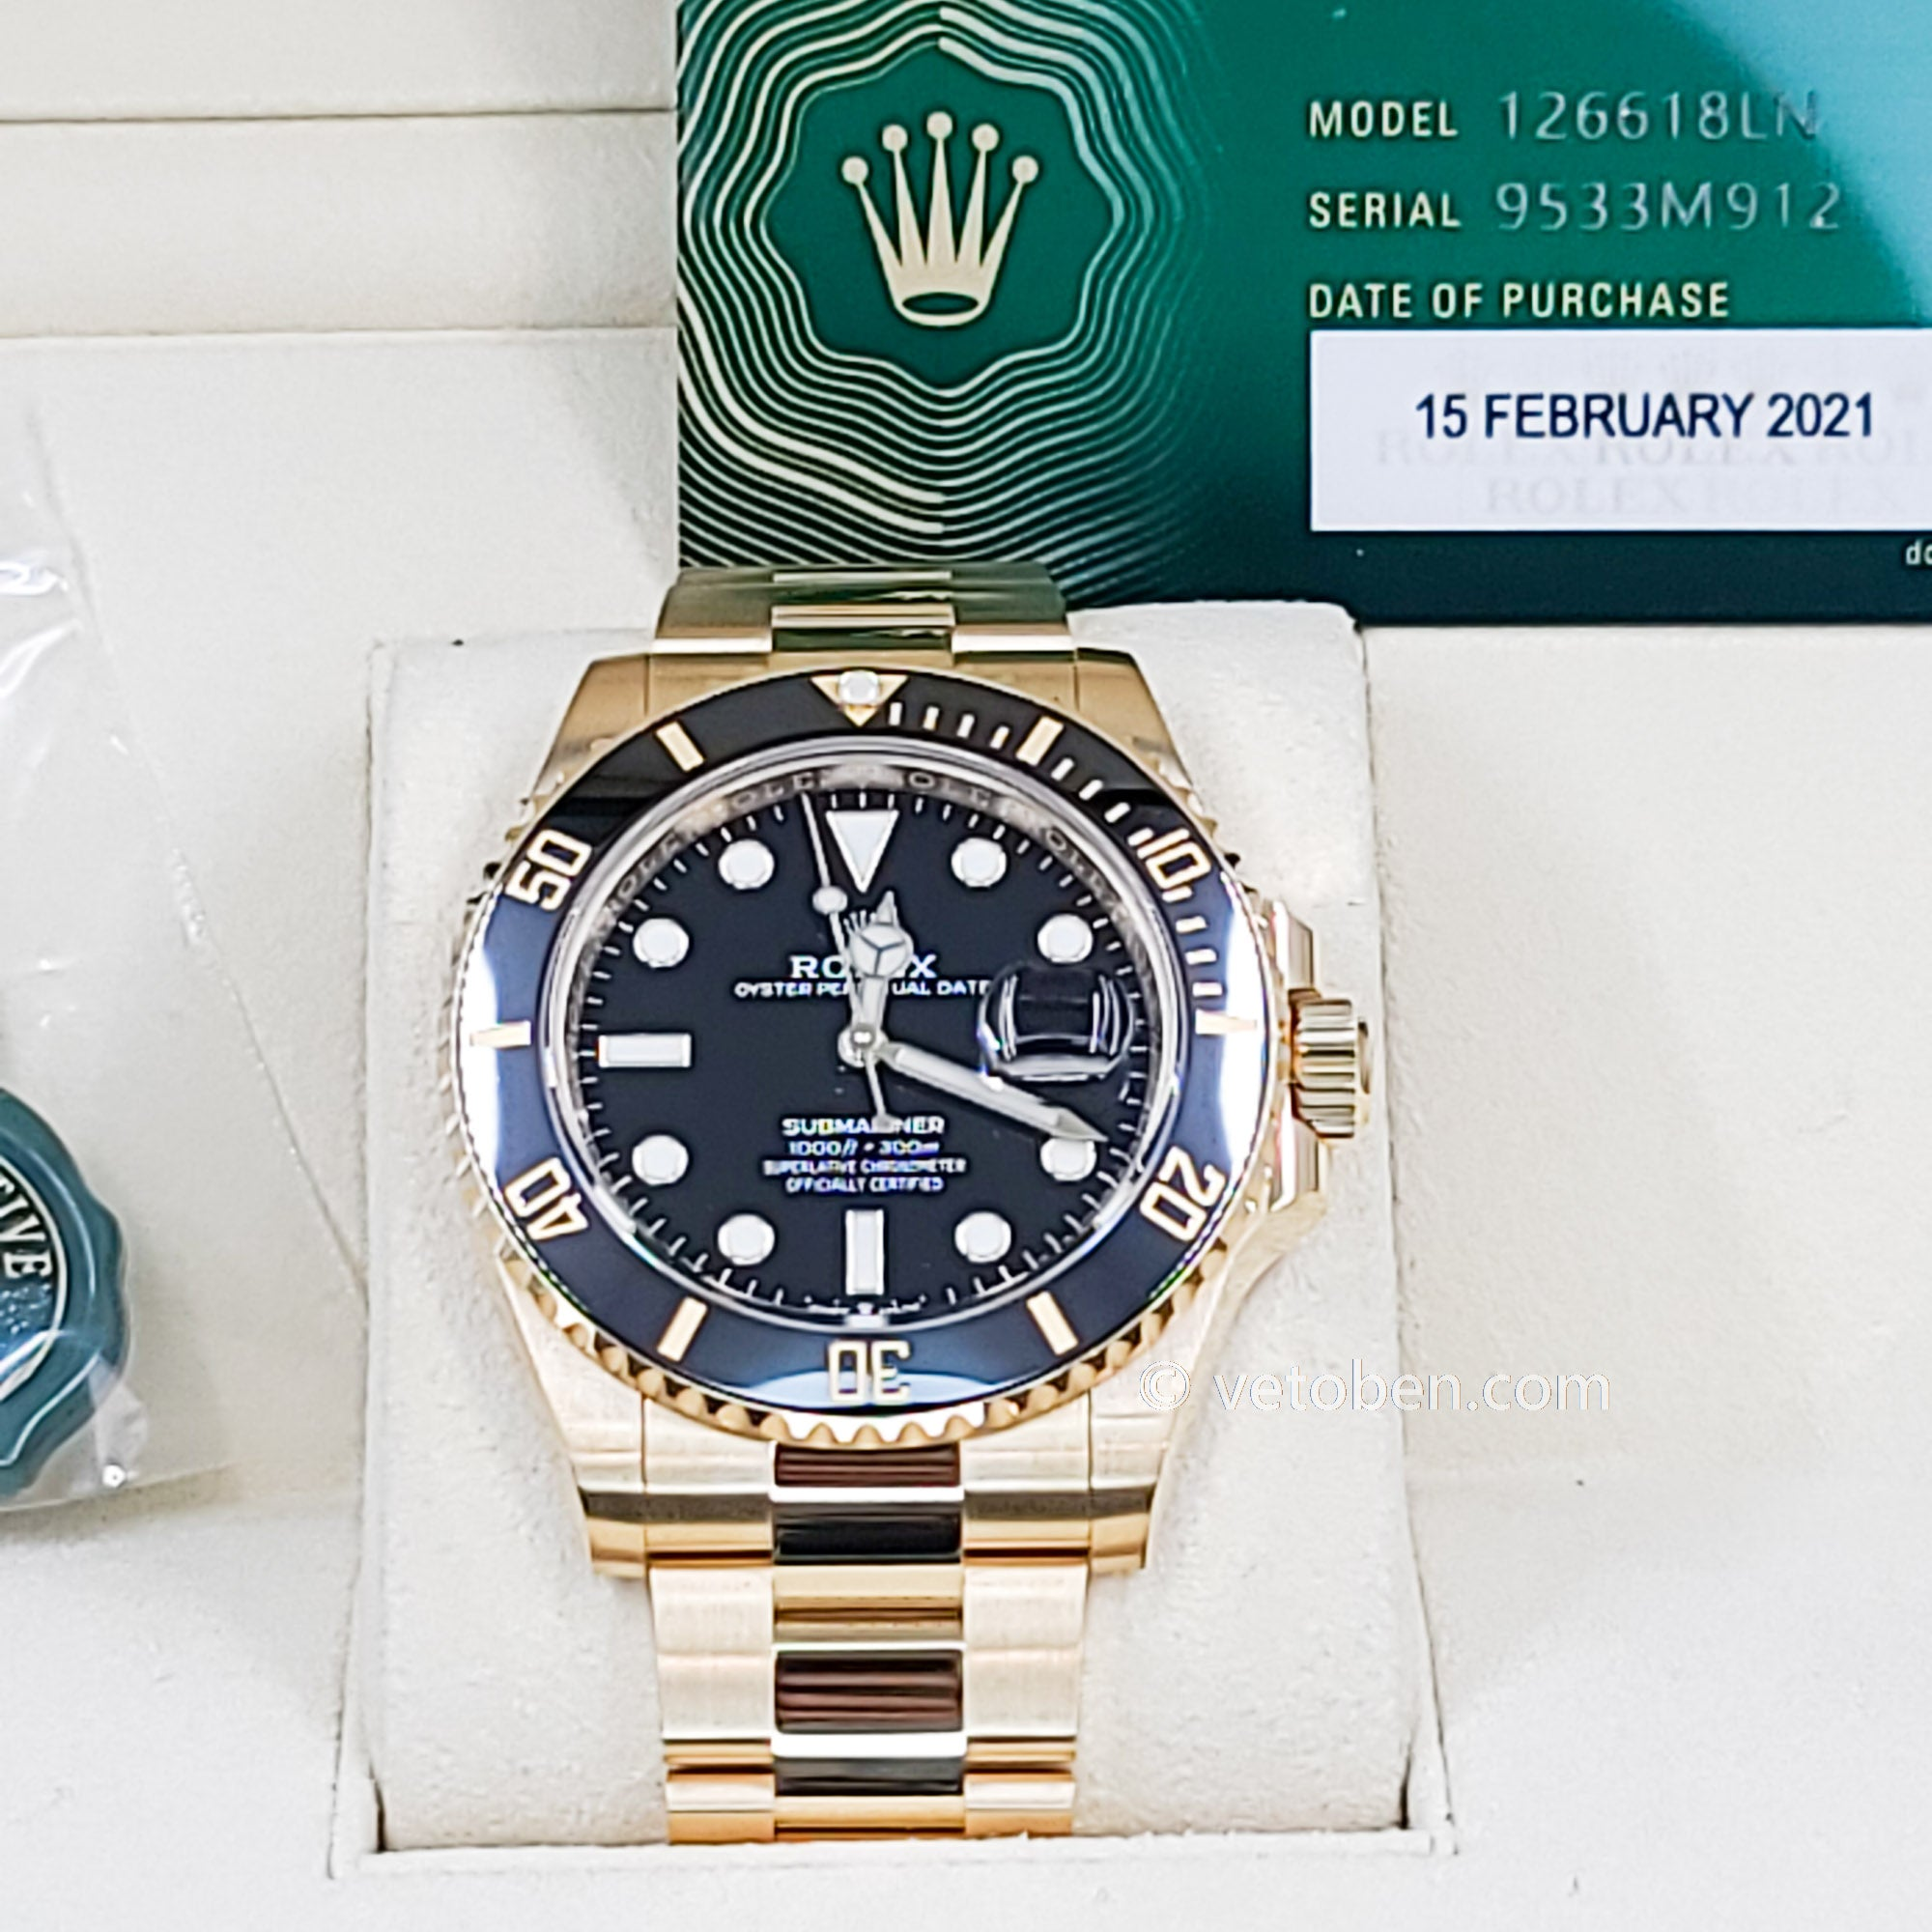 2021 SUBMARINER DATE Oyster, 41 mm, yellow gold 126618LN